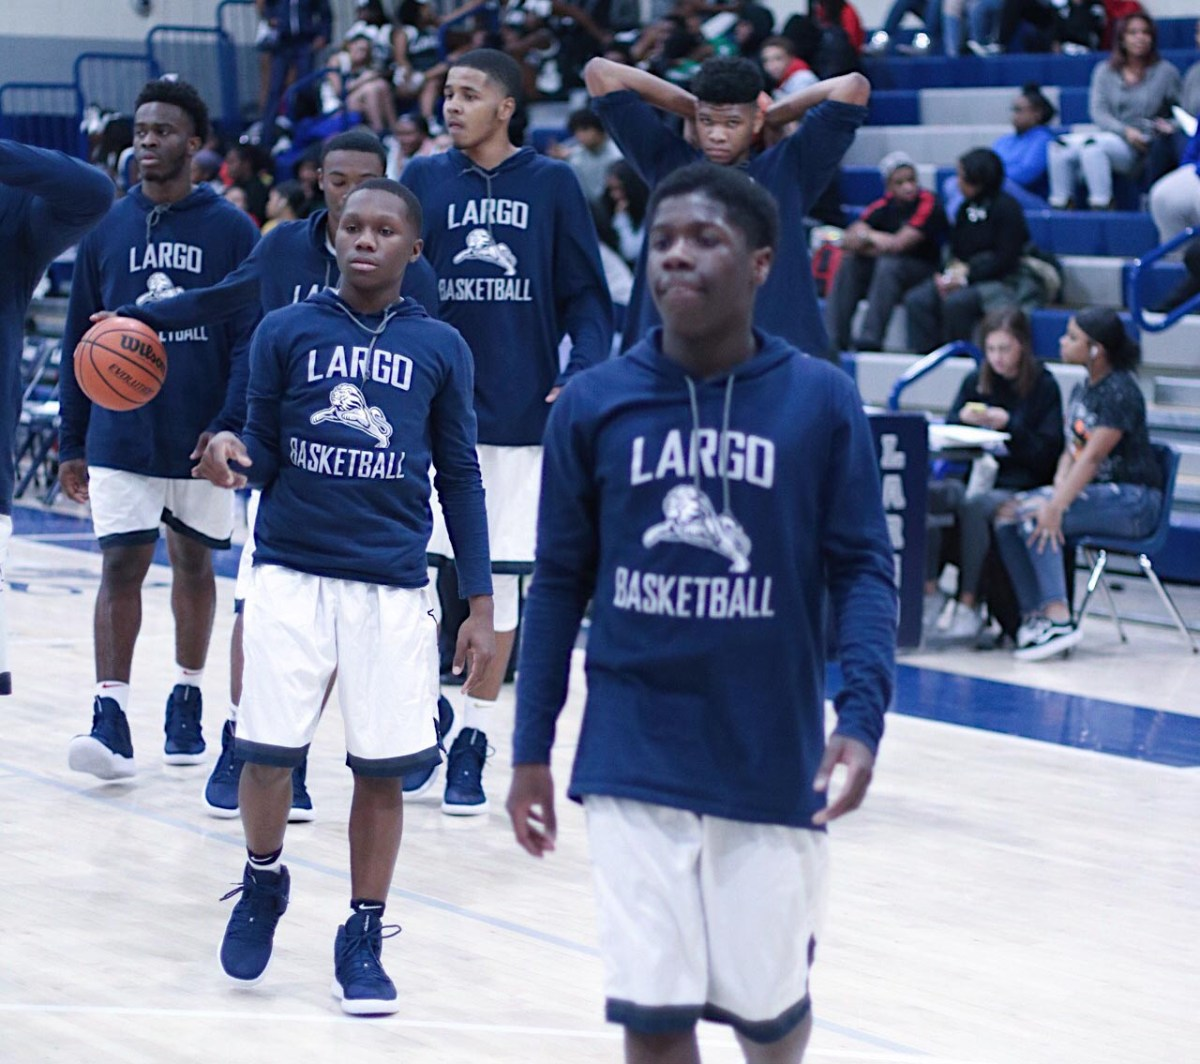 Largo will rely on experience to take them to next level